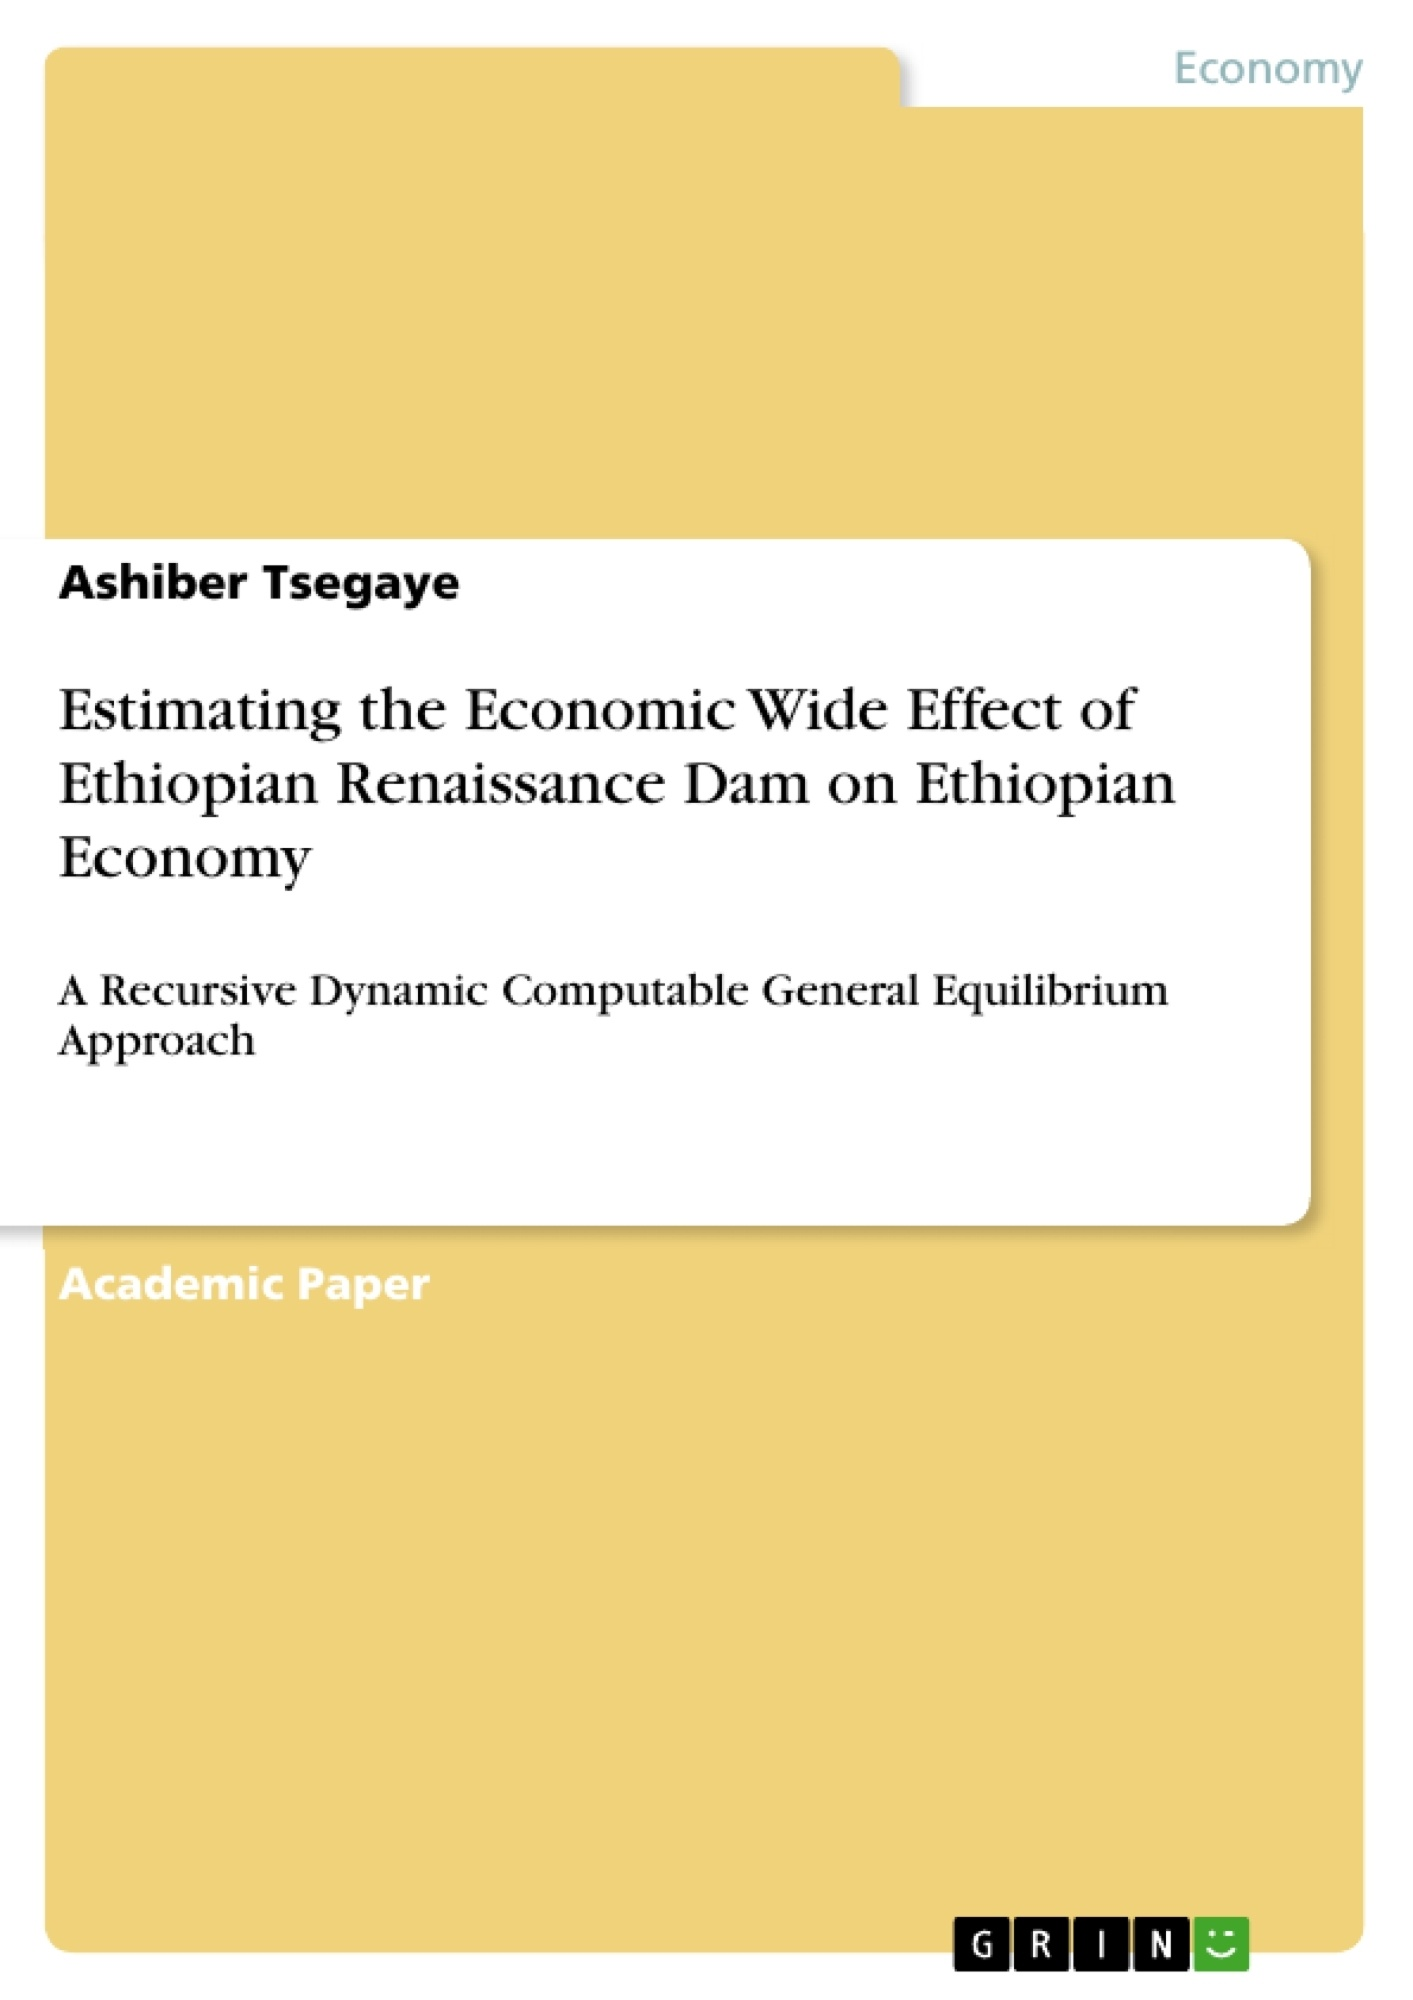 Title: Estimating the Economic Wide Effect of Ethiopian Renaissance Dam on Ethiopian Economy